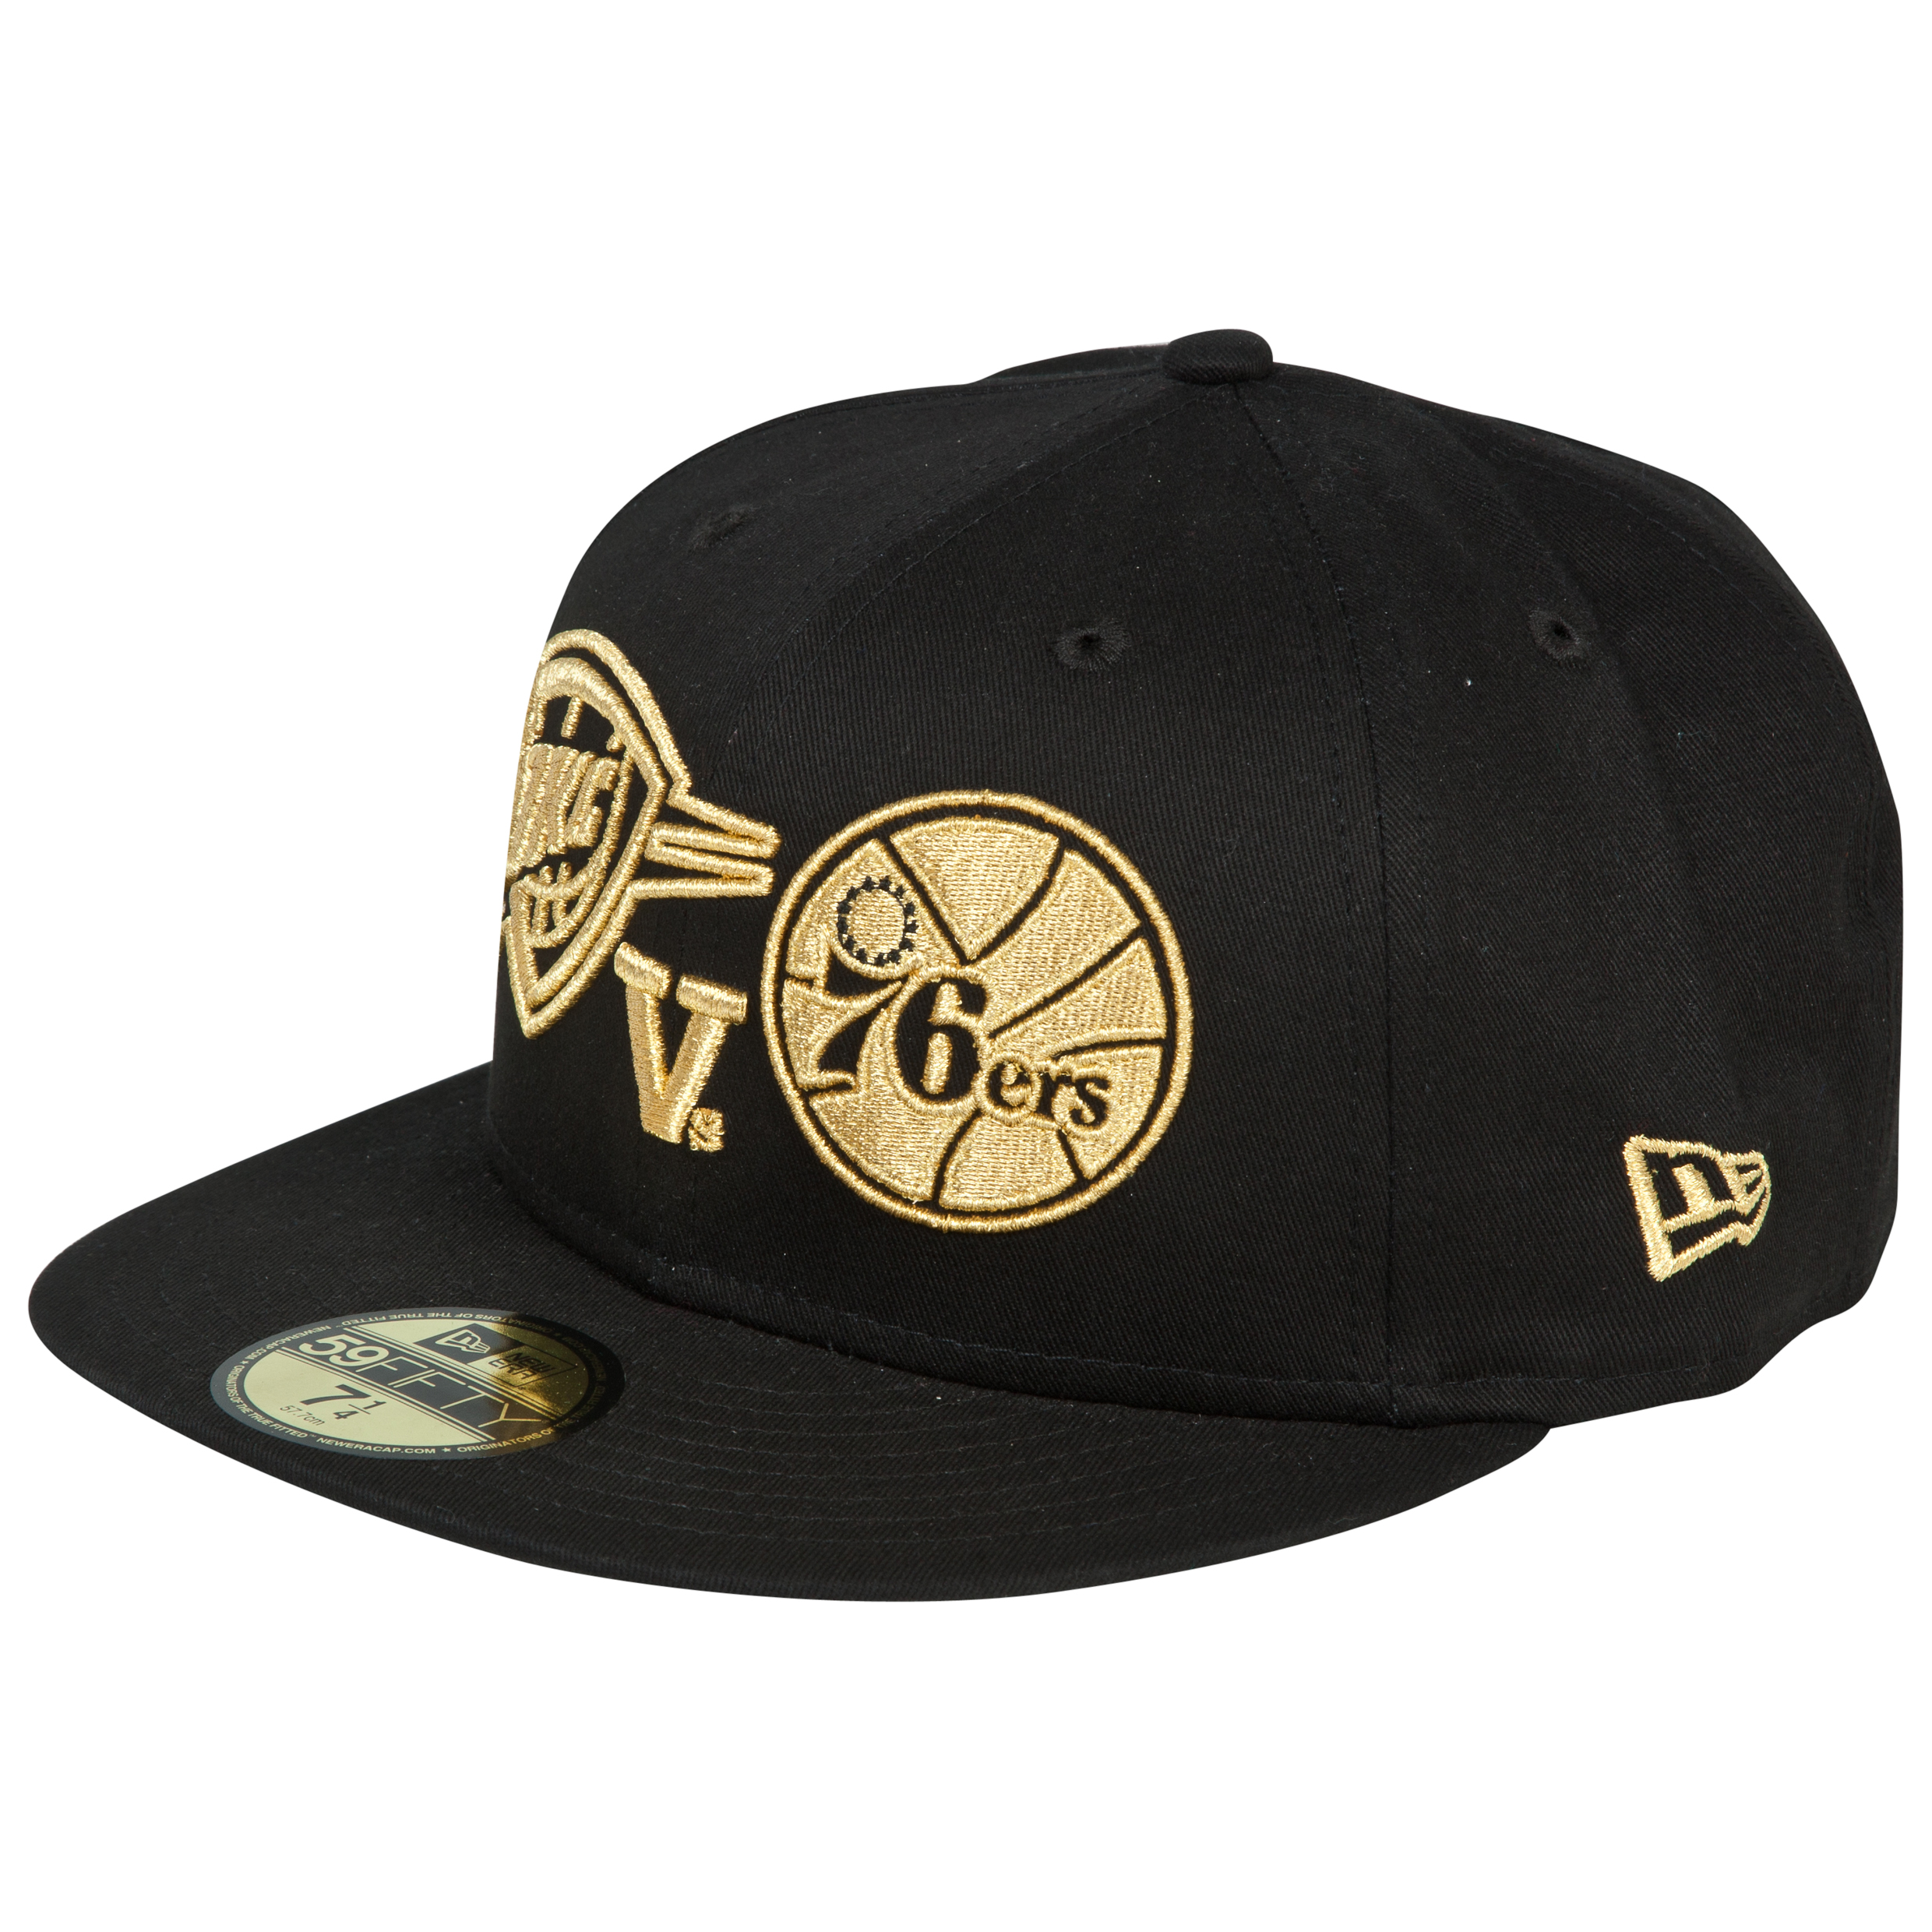 NBA Global Games Gold Logos New Era 59FIFTY Fitted Cap